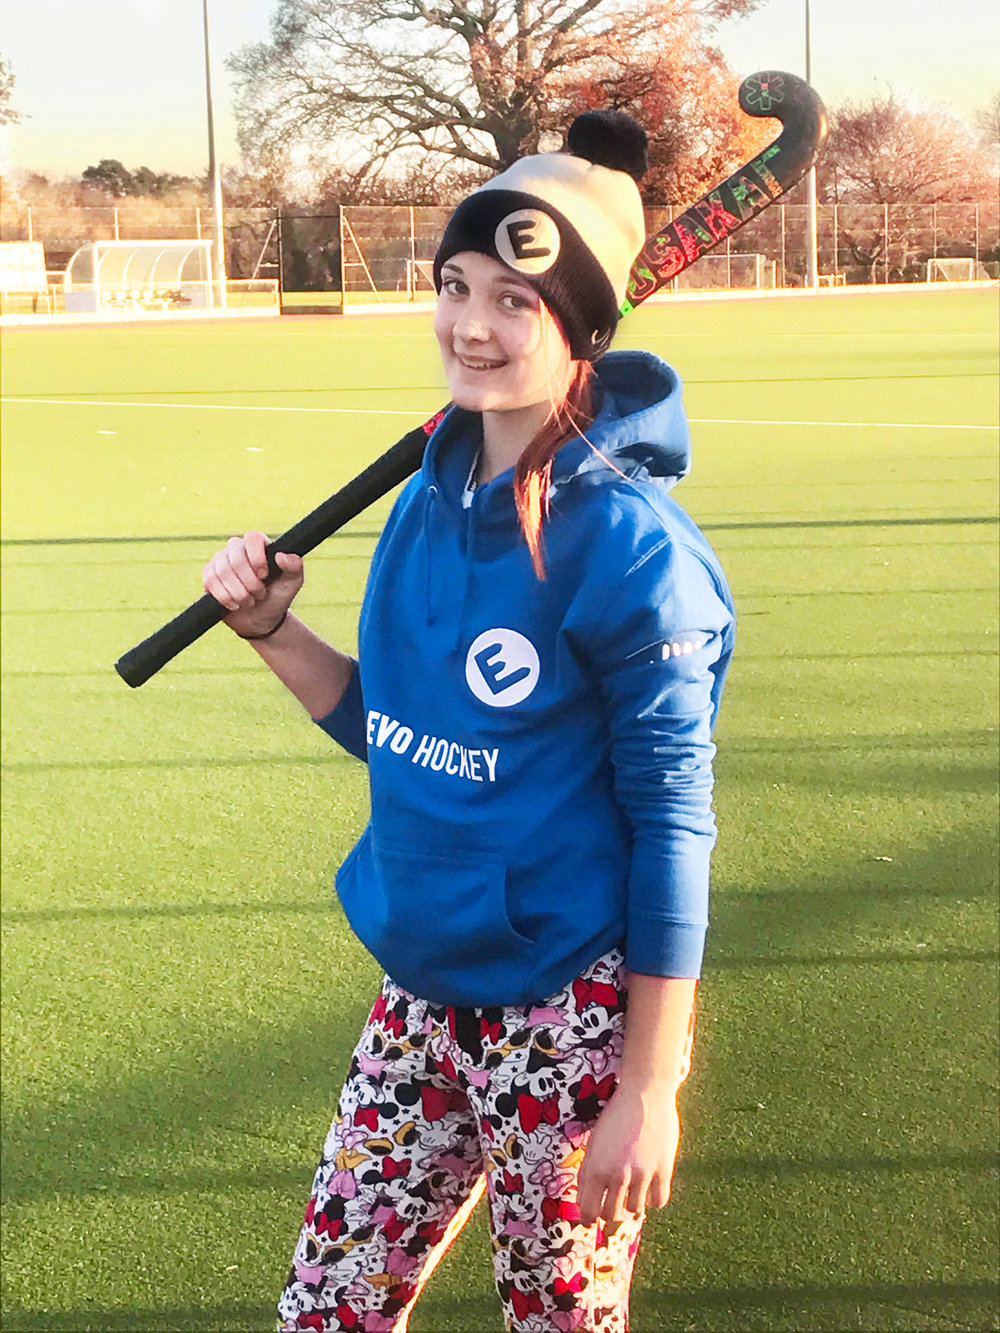 Jas at training with the Trousers of Destiny, EVO bobble hat and hoodie